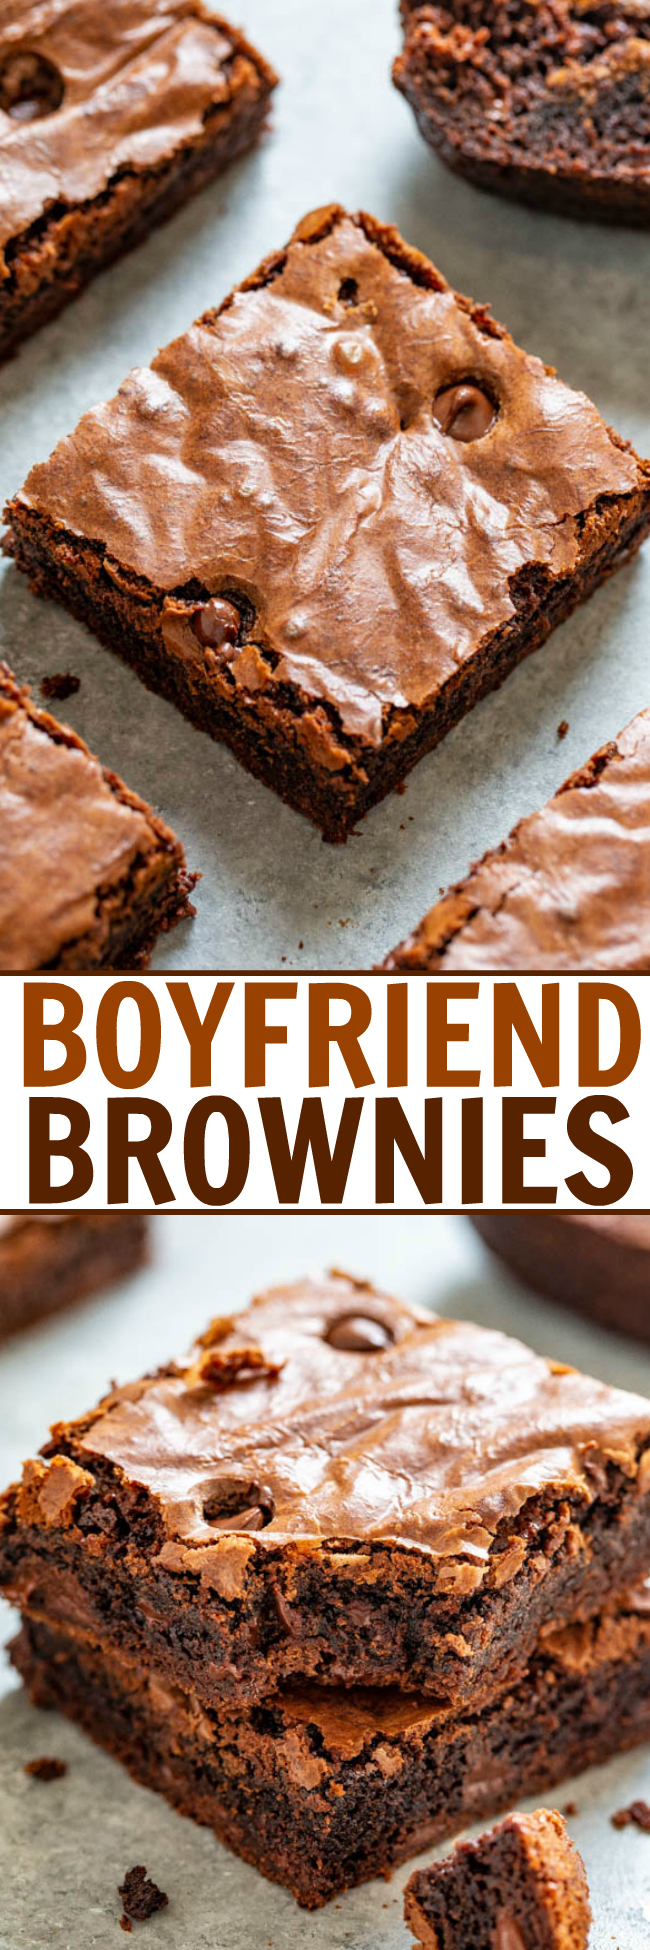 Boyfriend Brownies - Thick, rich, and a chocolate lovers dream!! Fudgy in the center with chewy edges and studded with chocolate chips! If you're craving chocolate, this EASY homemade brownie recipe is just what you need!!